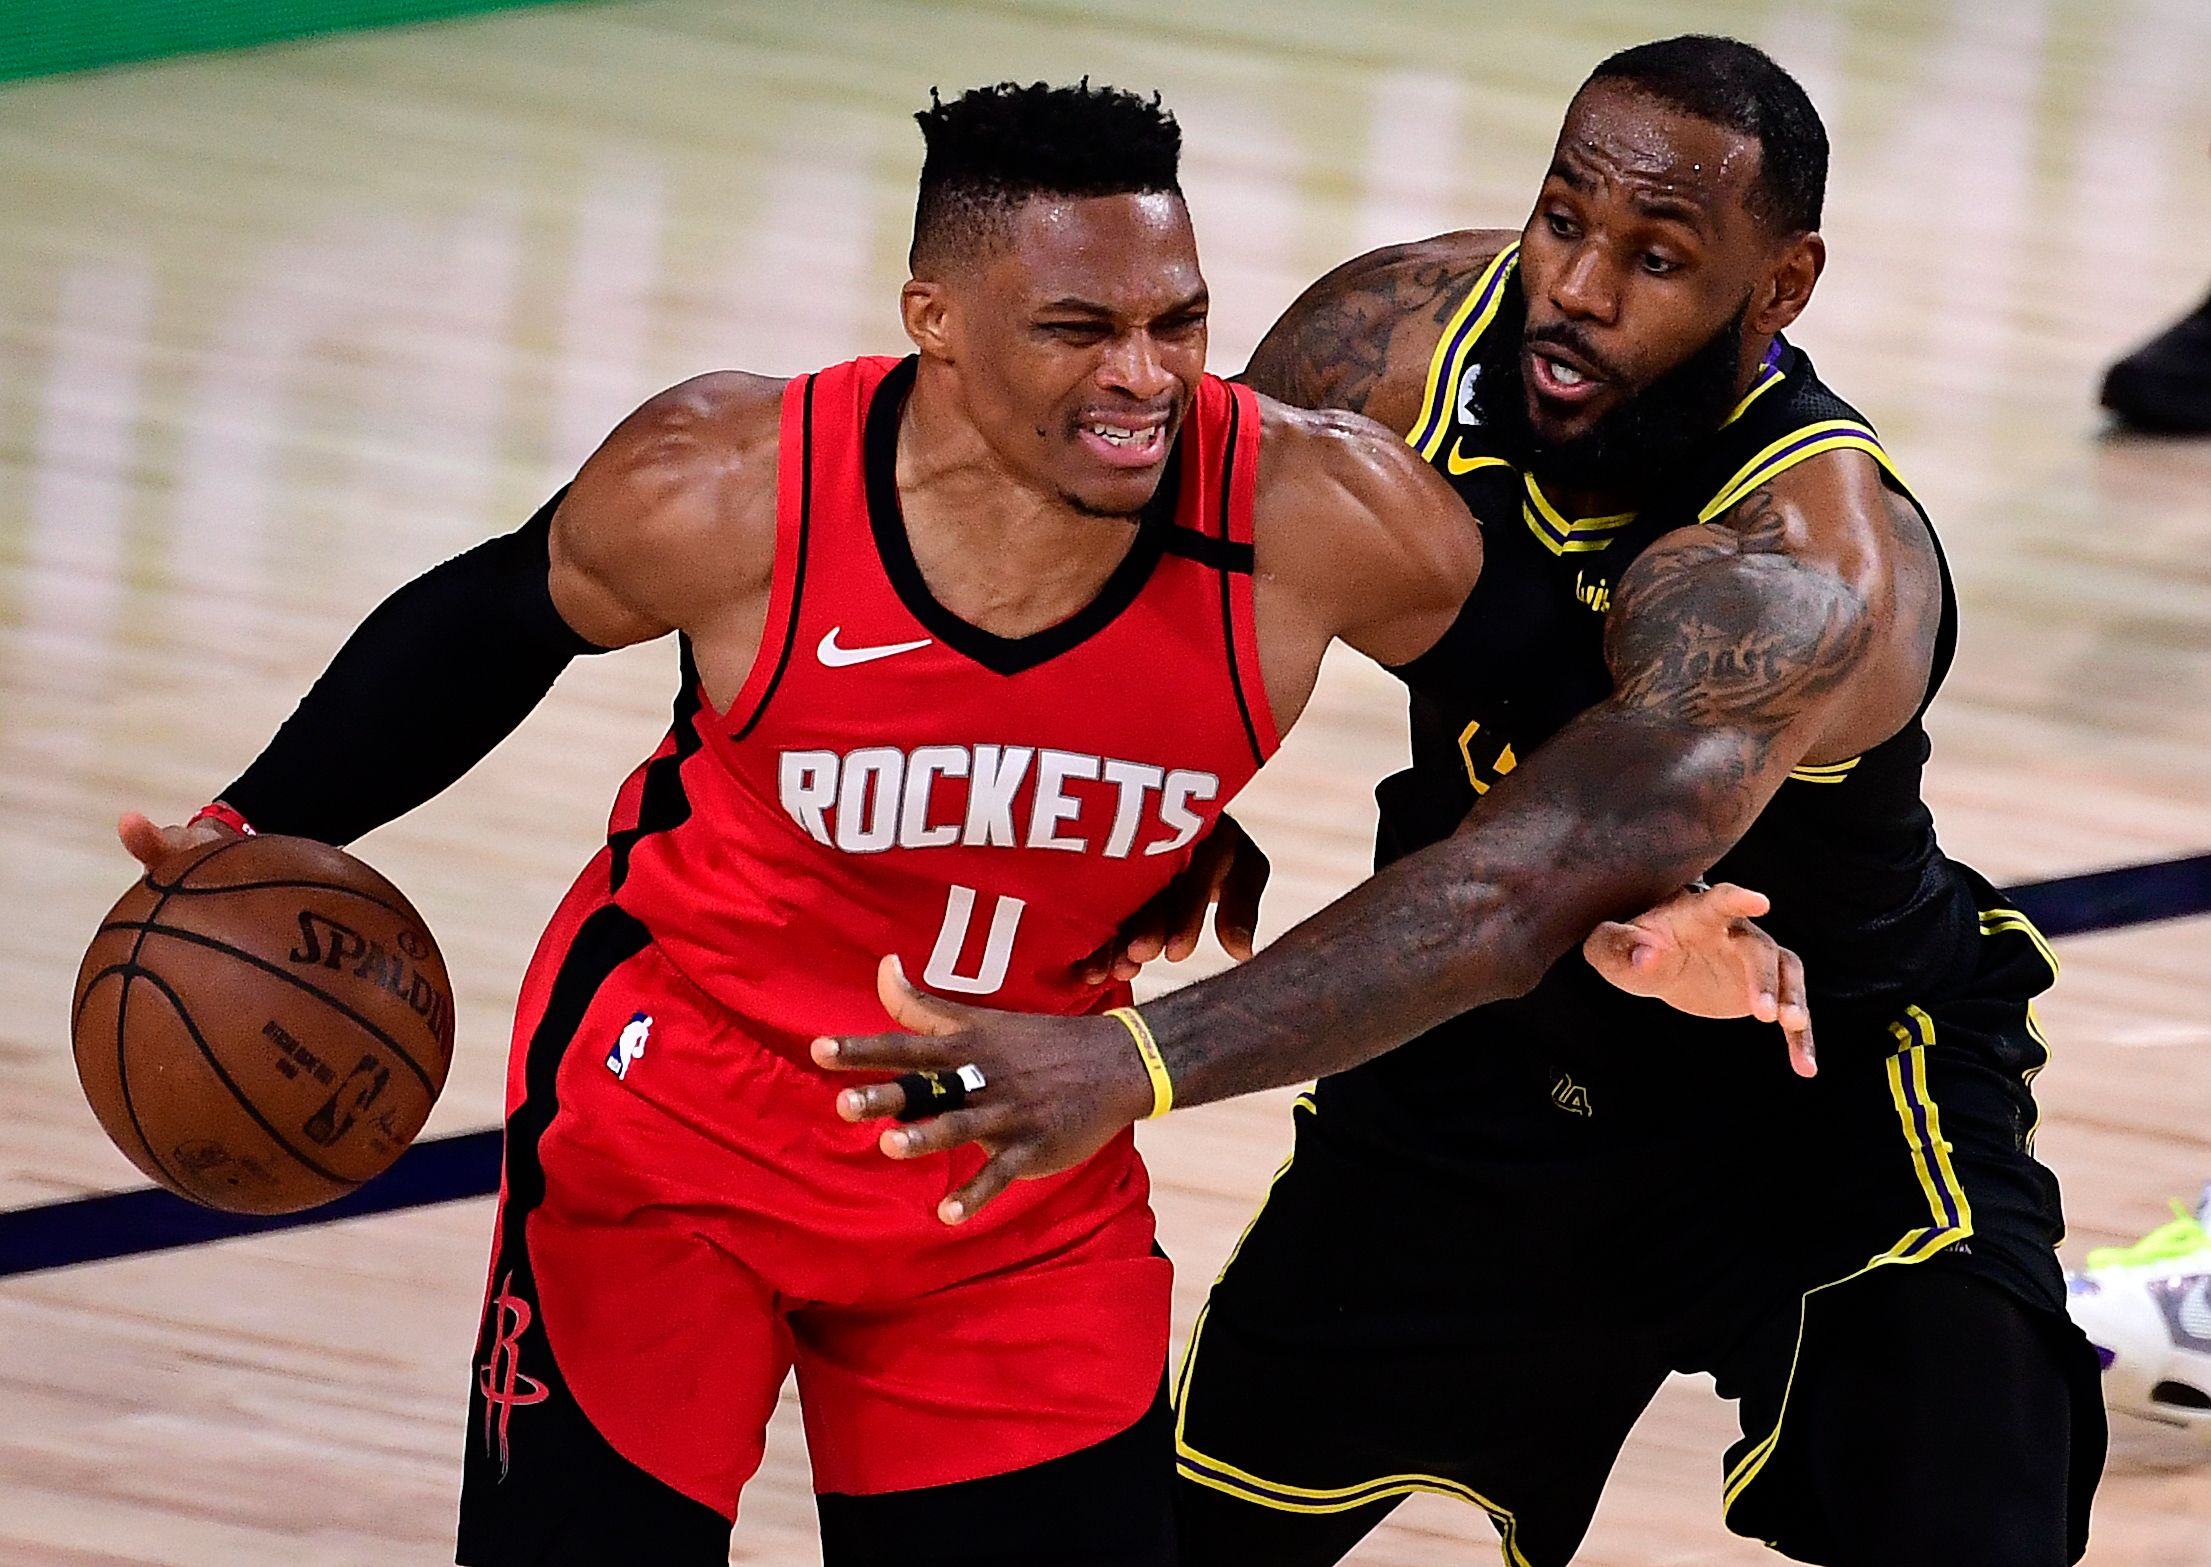 Russell Westbrook guarding LeBron James